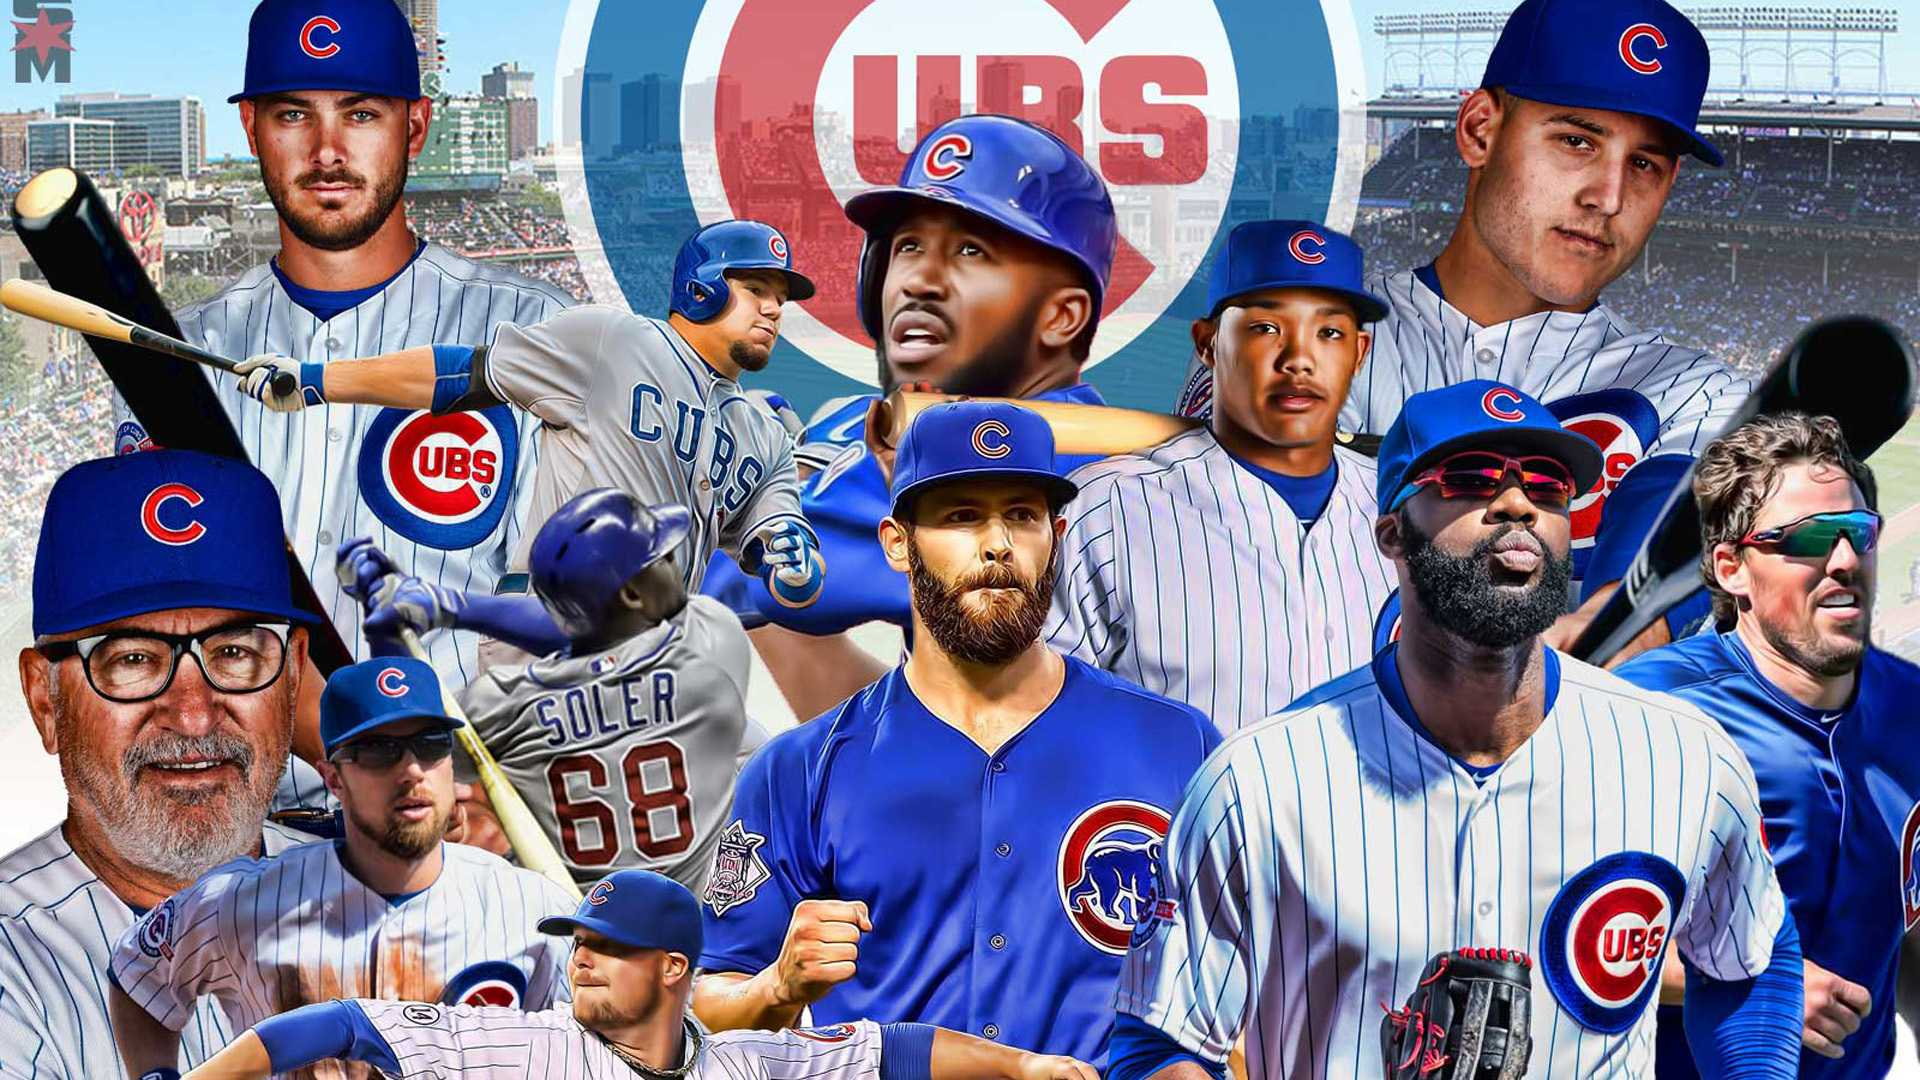 Chicago Cubs Wallpaper Hd: The Purple Quill : What To Look For In The MLB